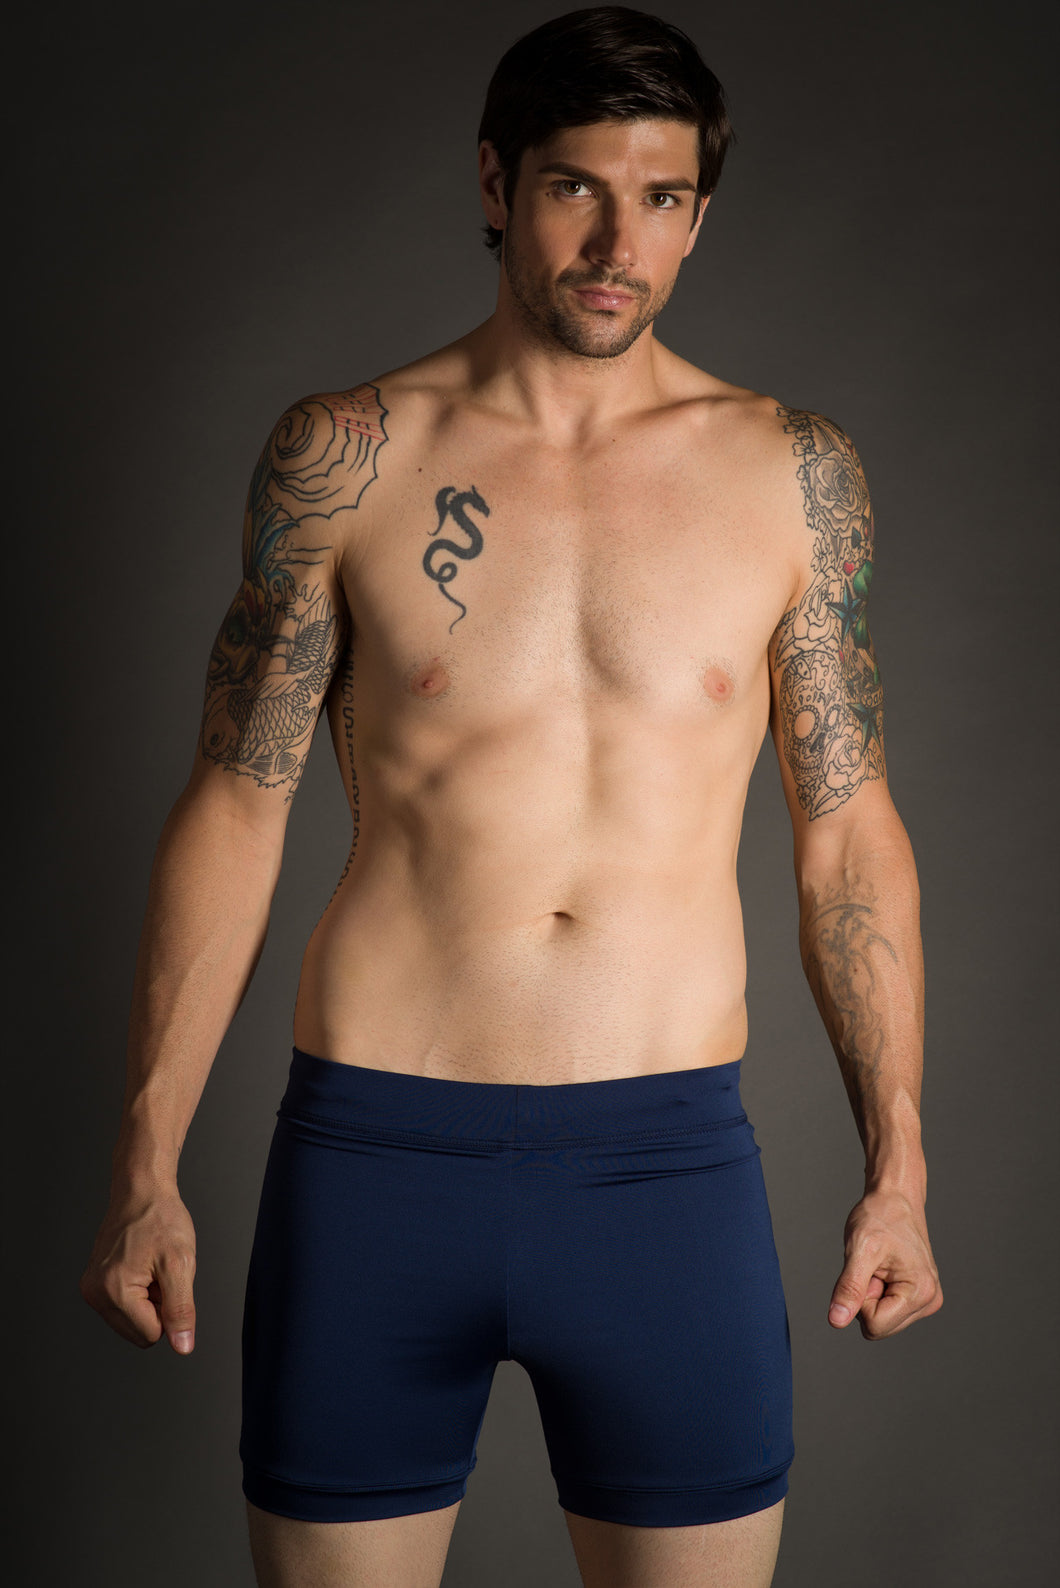 Blue Men's Hot Yoga Shorts